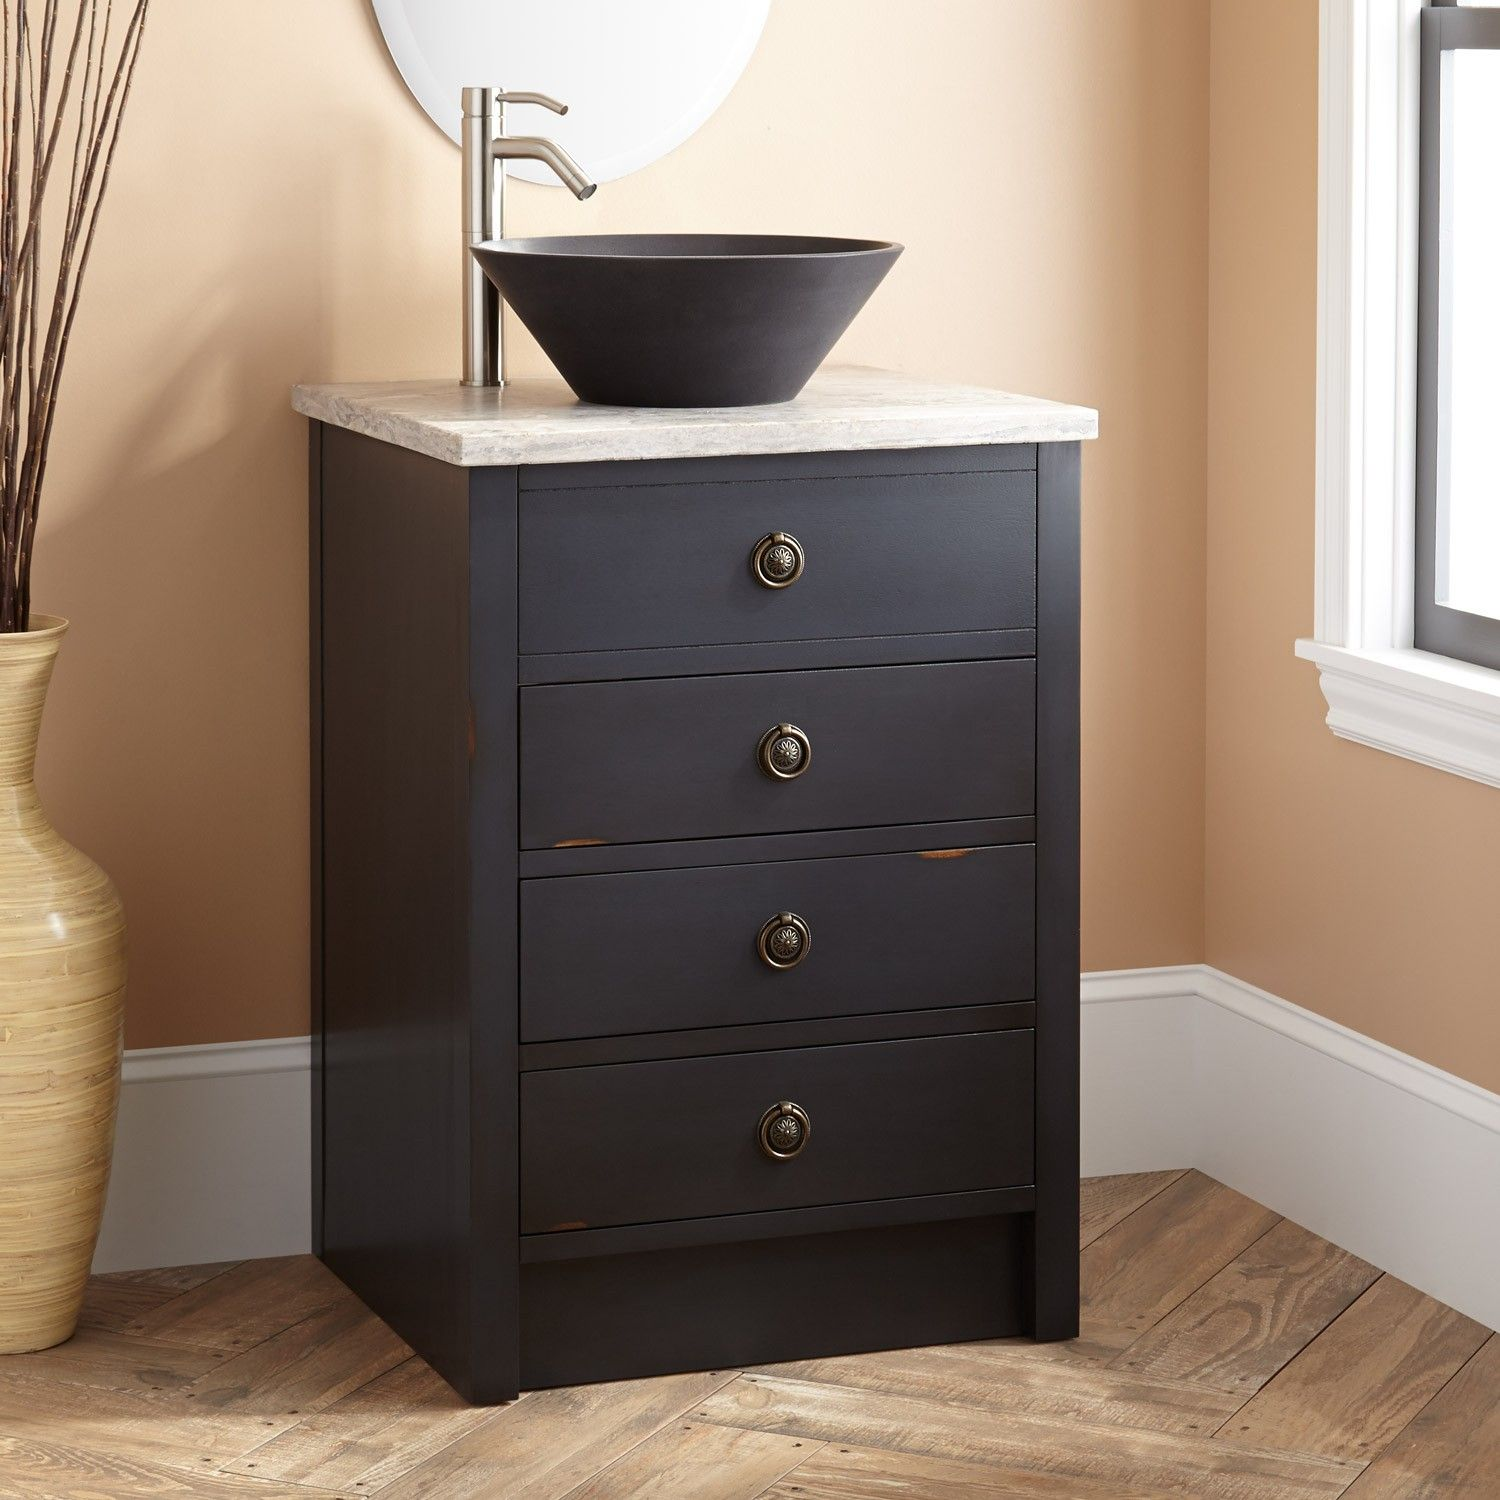 Beautiful Floor Cabinet with Drawers